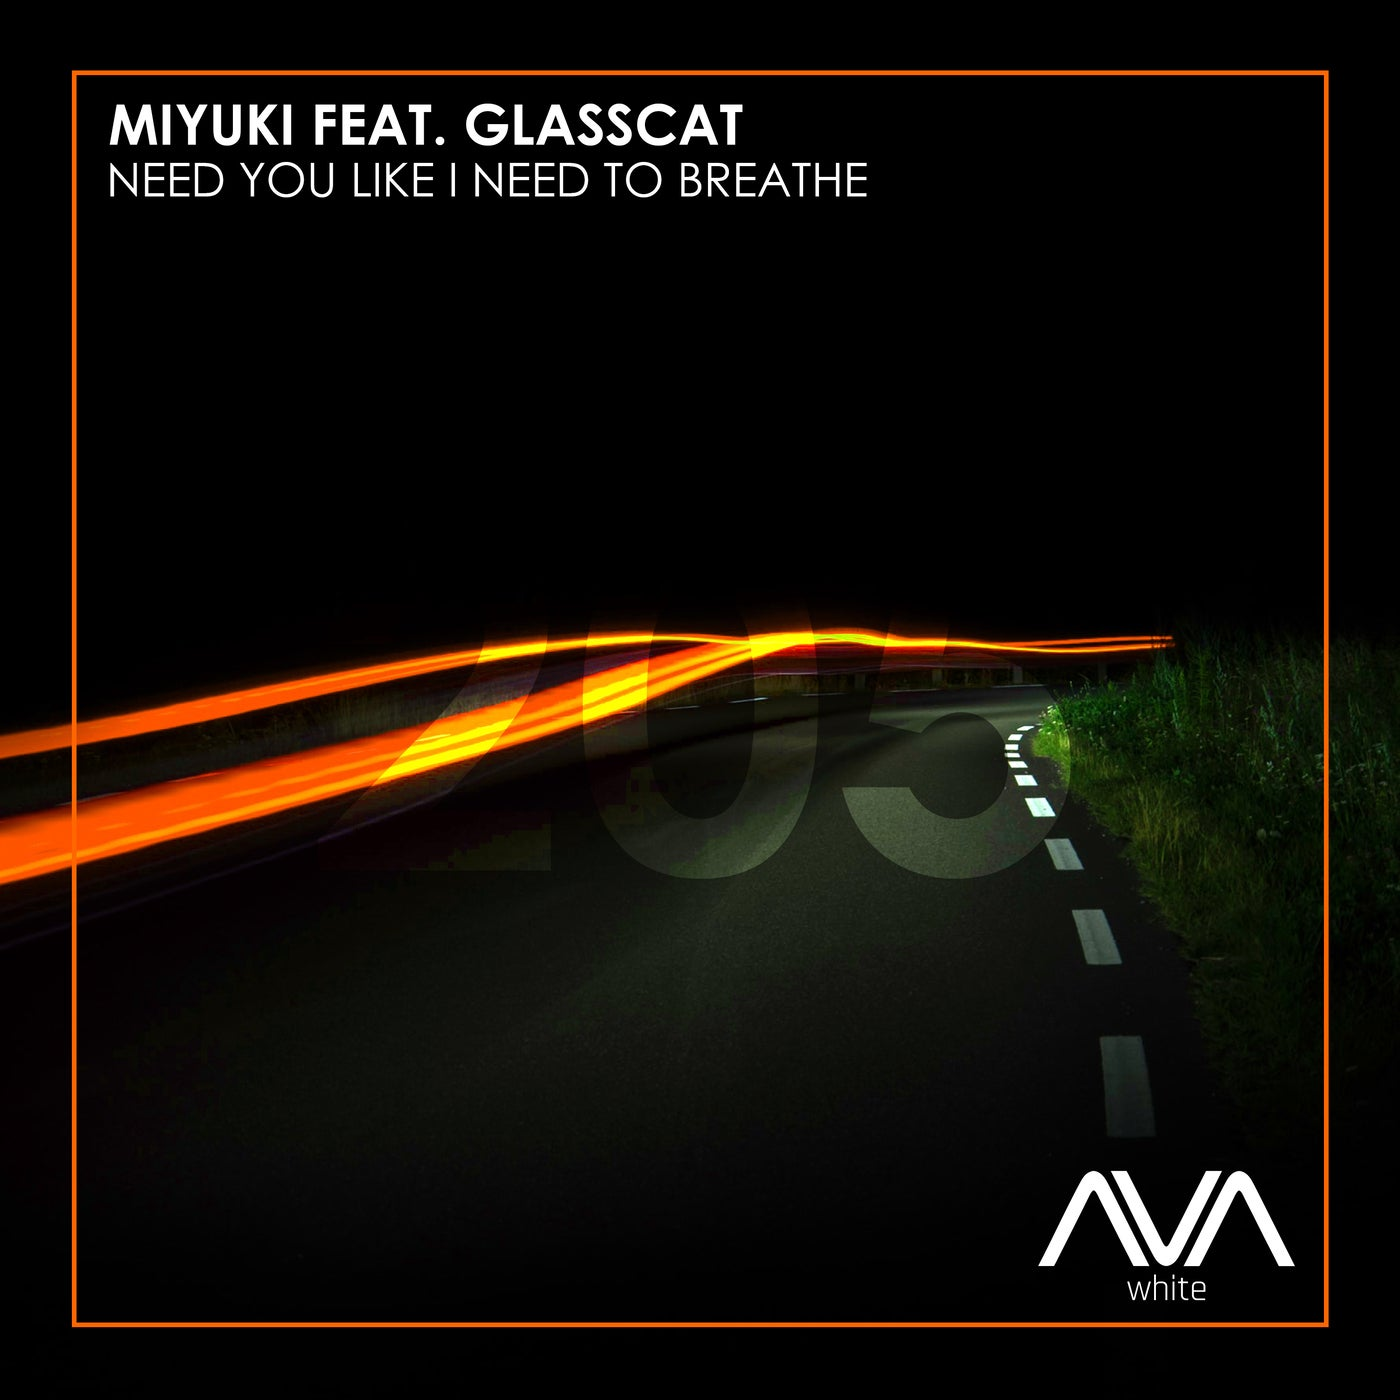 Need You Like I Need To Breathe feat. Glasscat (Extended Mix)